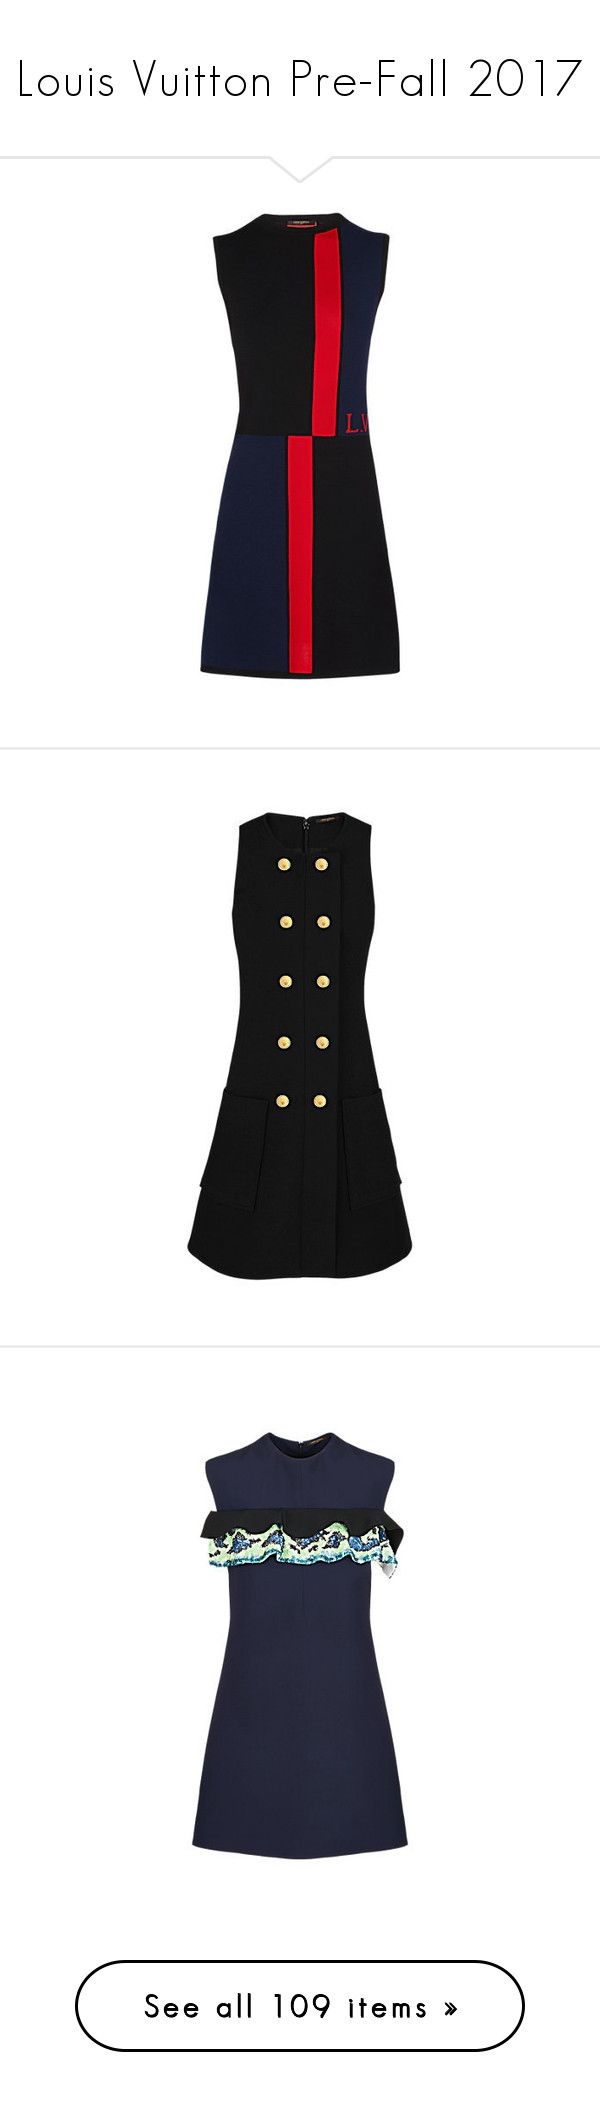 """""""Louis Vuitton Pre-Fall 2017"""" by mariots22 ❤ liked on Polyvore featuring dresses, a line dress, skater skirt, a line skater skirt, no sleeve dress, sleeveless colorblock dress, woolen dress, wool dress, blue dress and leather belt"""